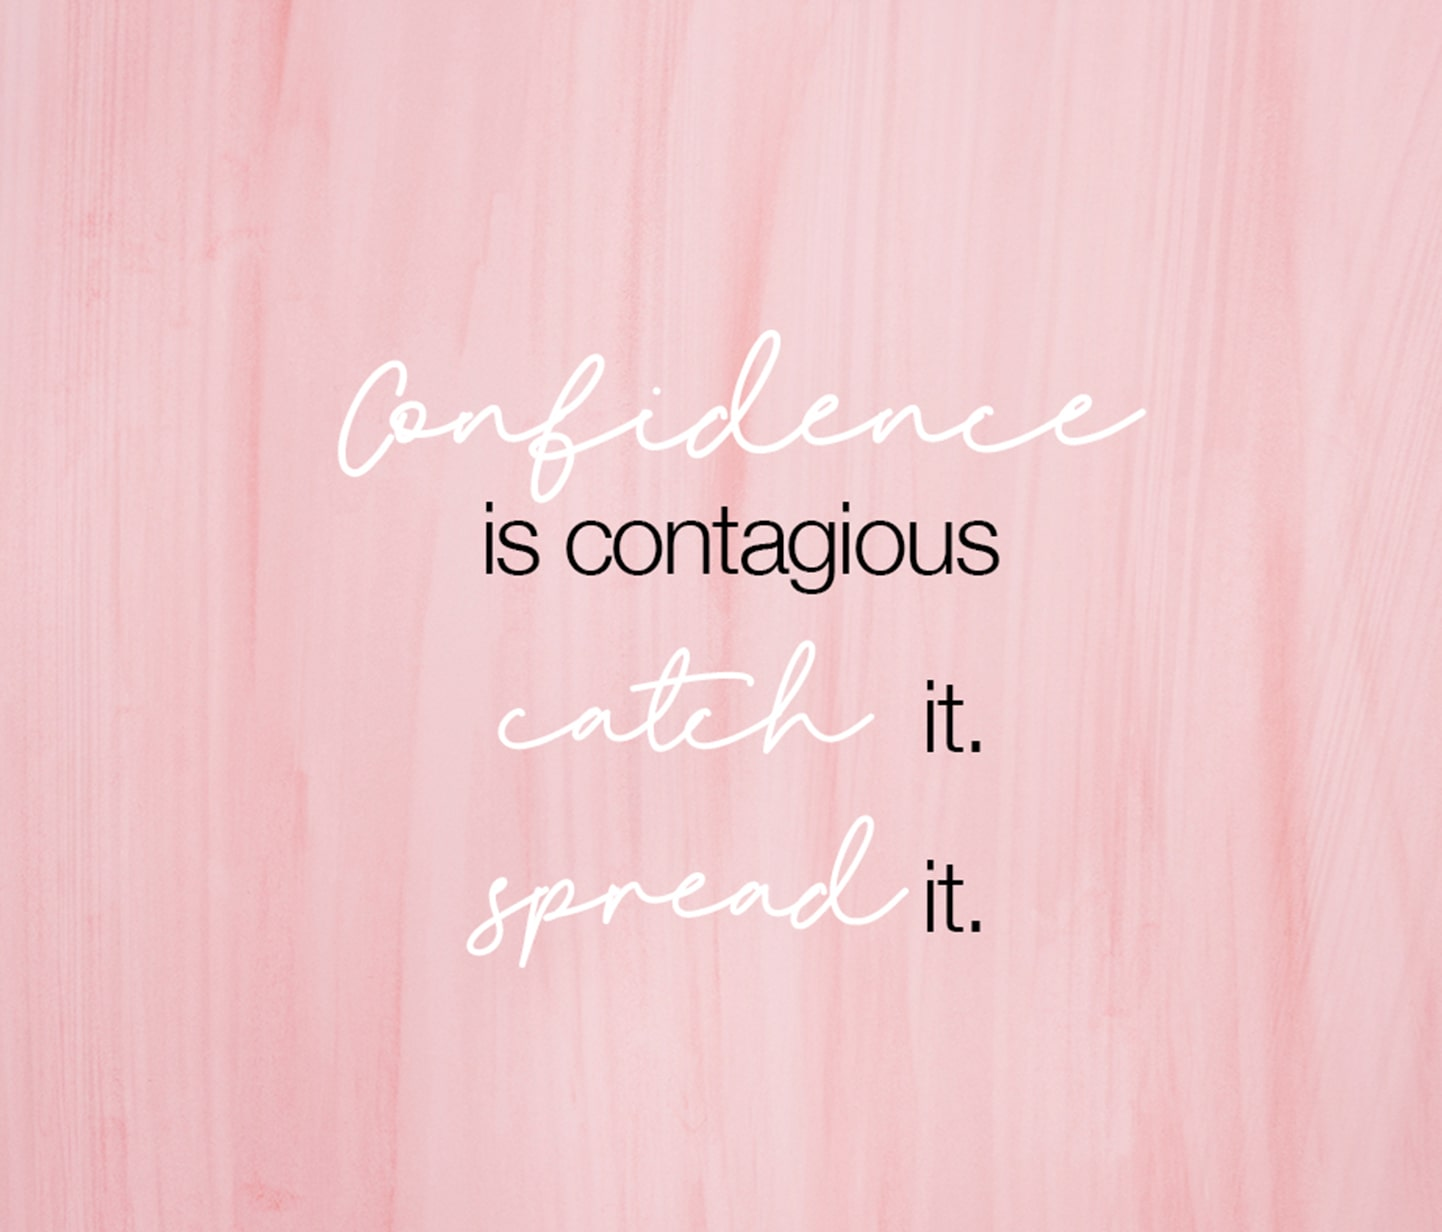 Confidence is contagious catch it, spread it